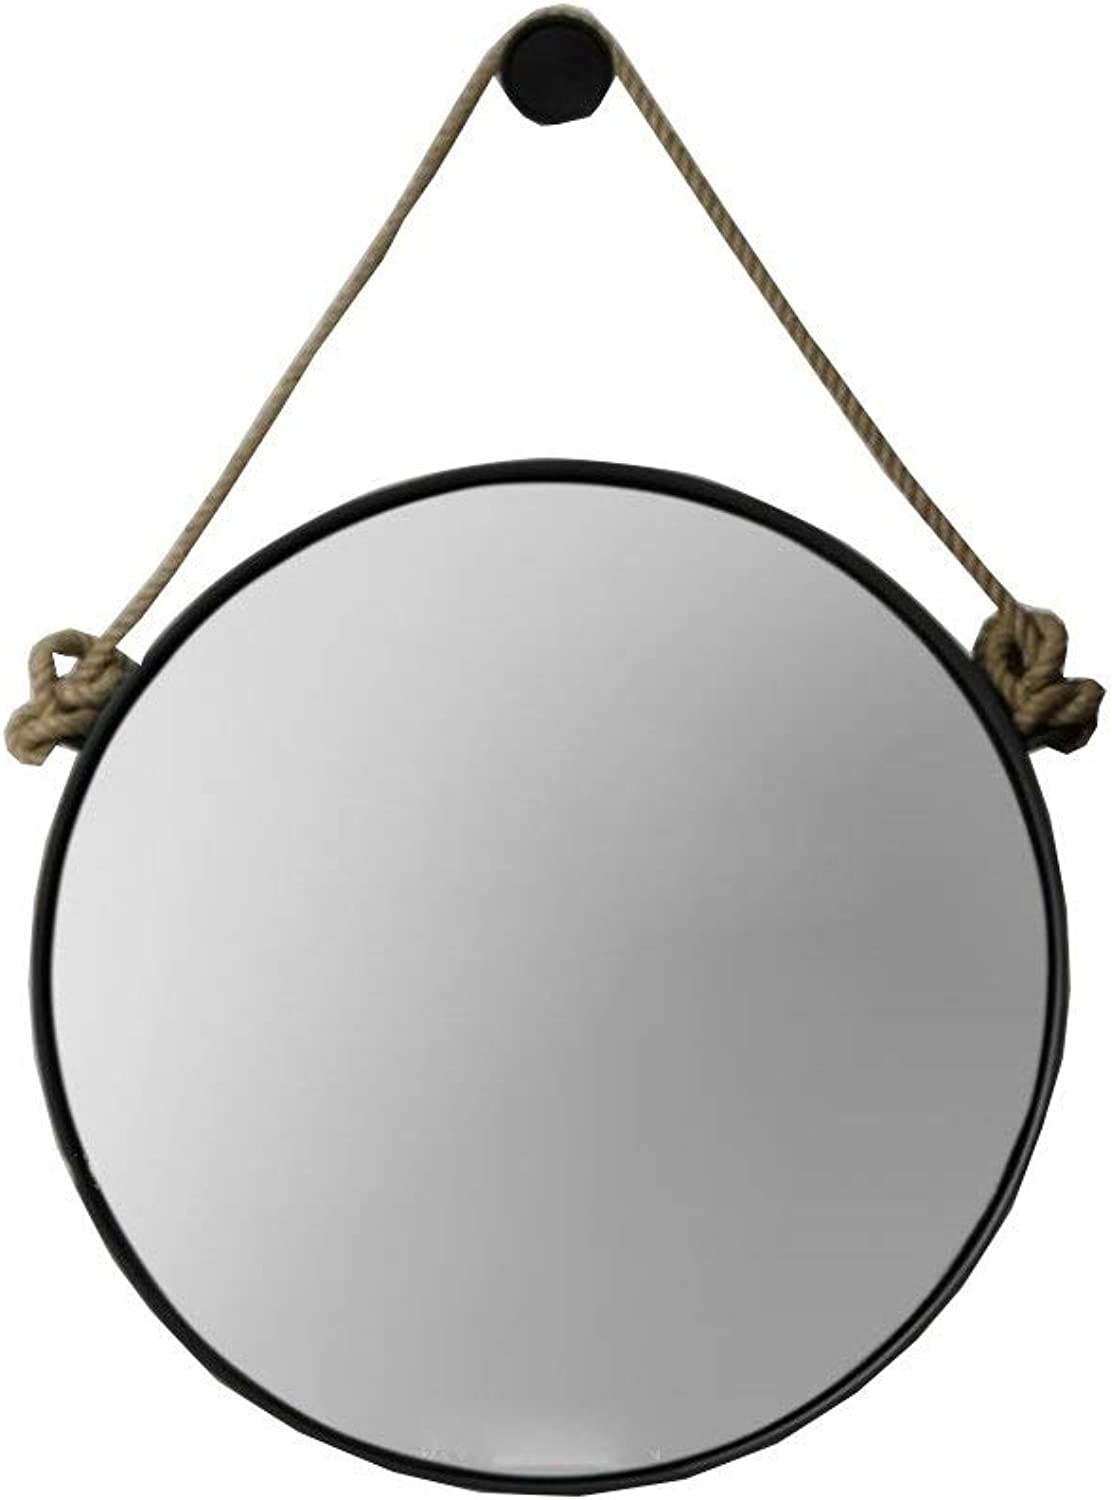 RXY-mirror Nordic Wrought Iron Round Mirror, Retro Industrial Wall Hanging Mirror, Living Room Decoration Hanging Mirror (color   Black, Size   20cm)